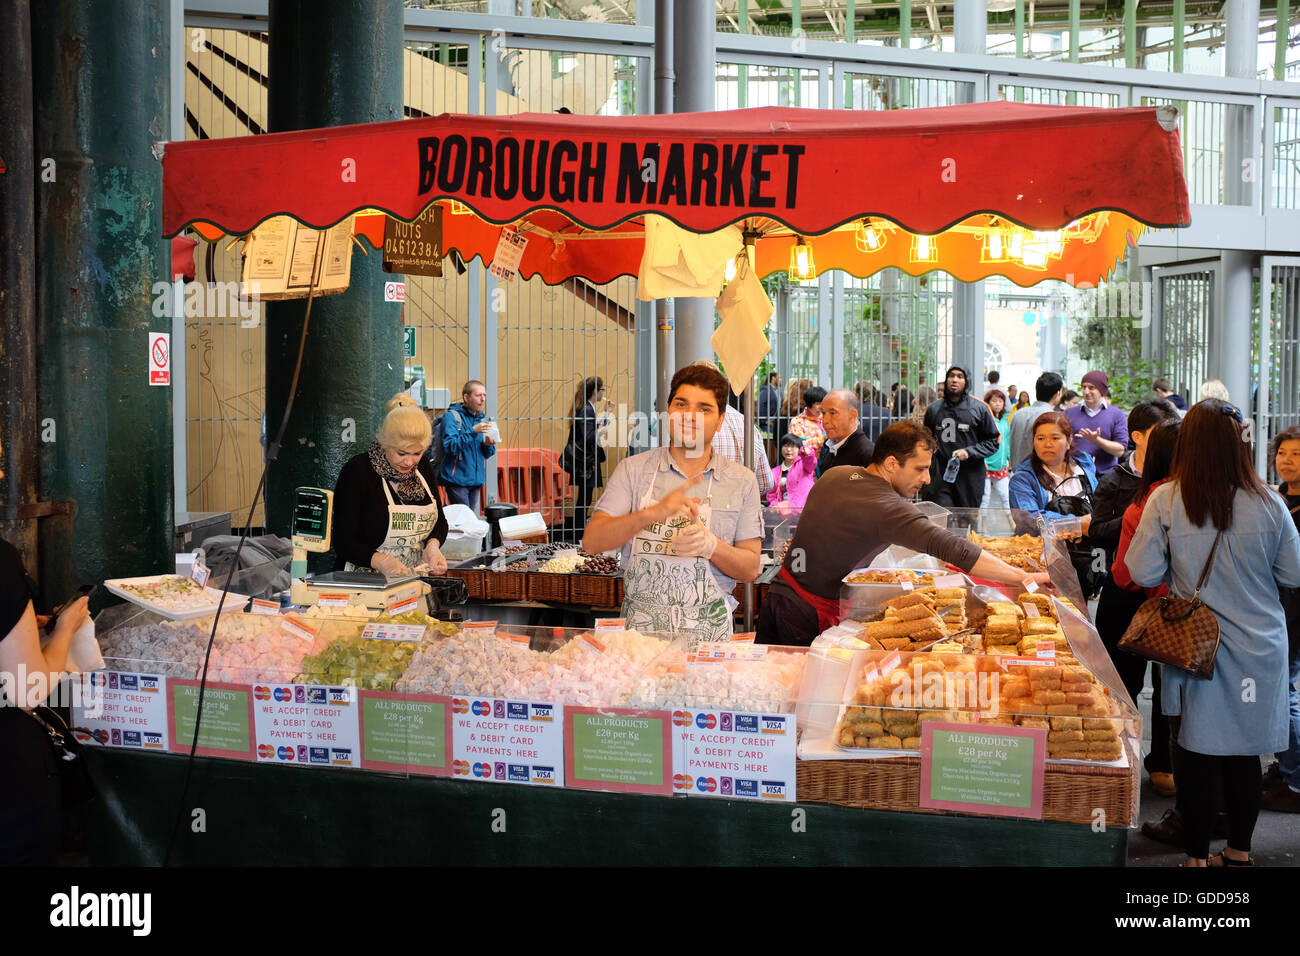 Borough Market in London, England. - Stock Image